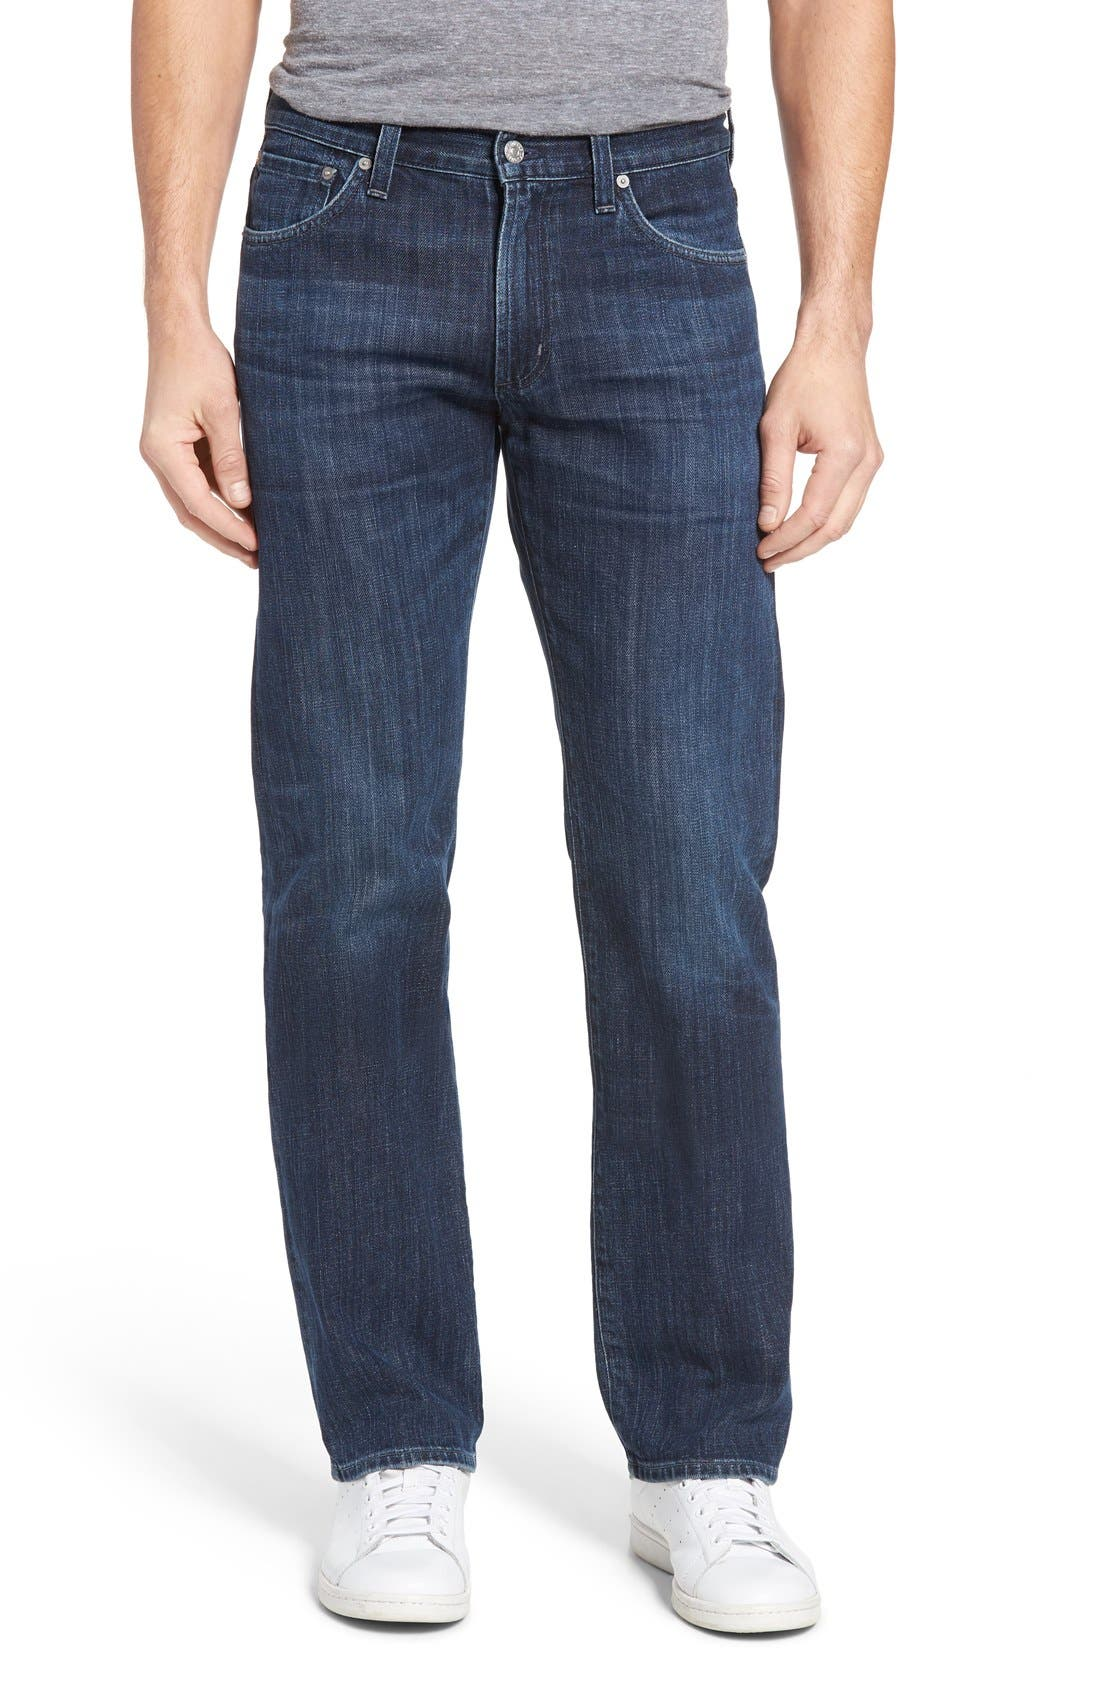 Sid Straight Leg Jeans,                             Main thumbnail 1, color,                             408